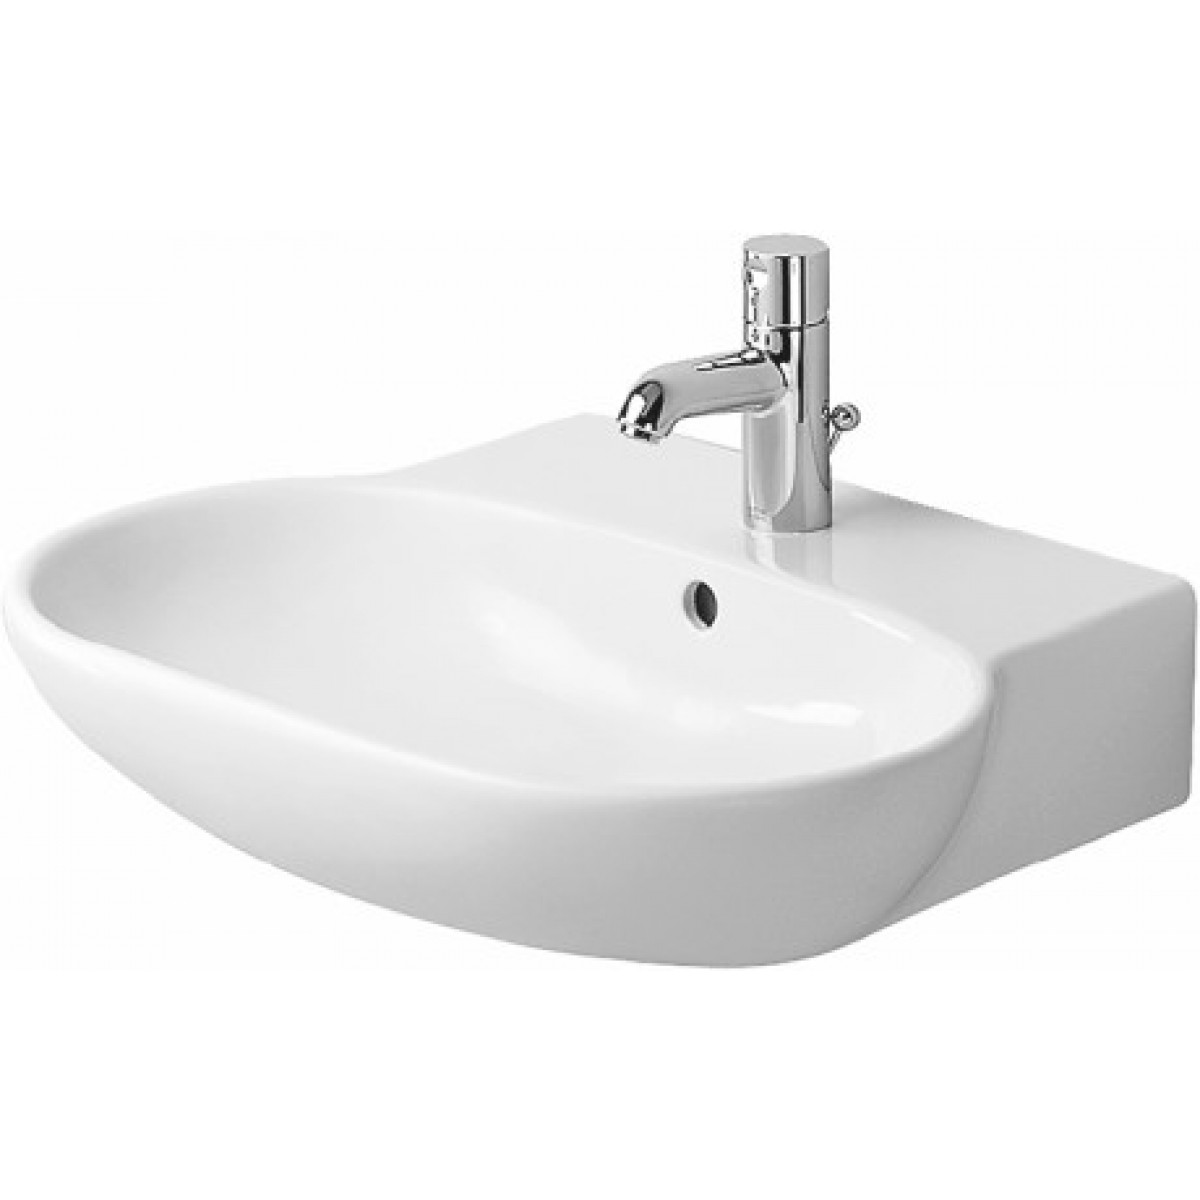 Duravit | Foster | 0419550000 | Wall Mounted Basin